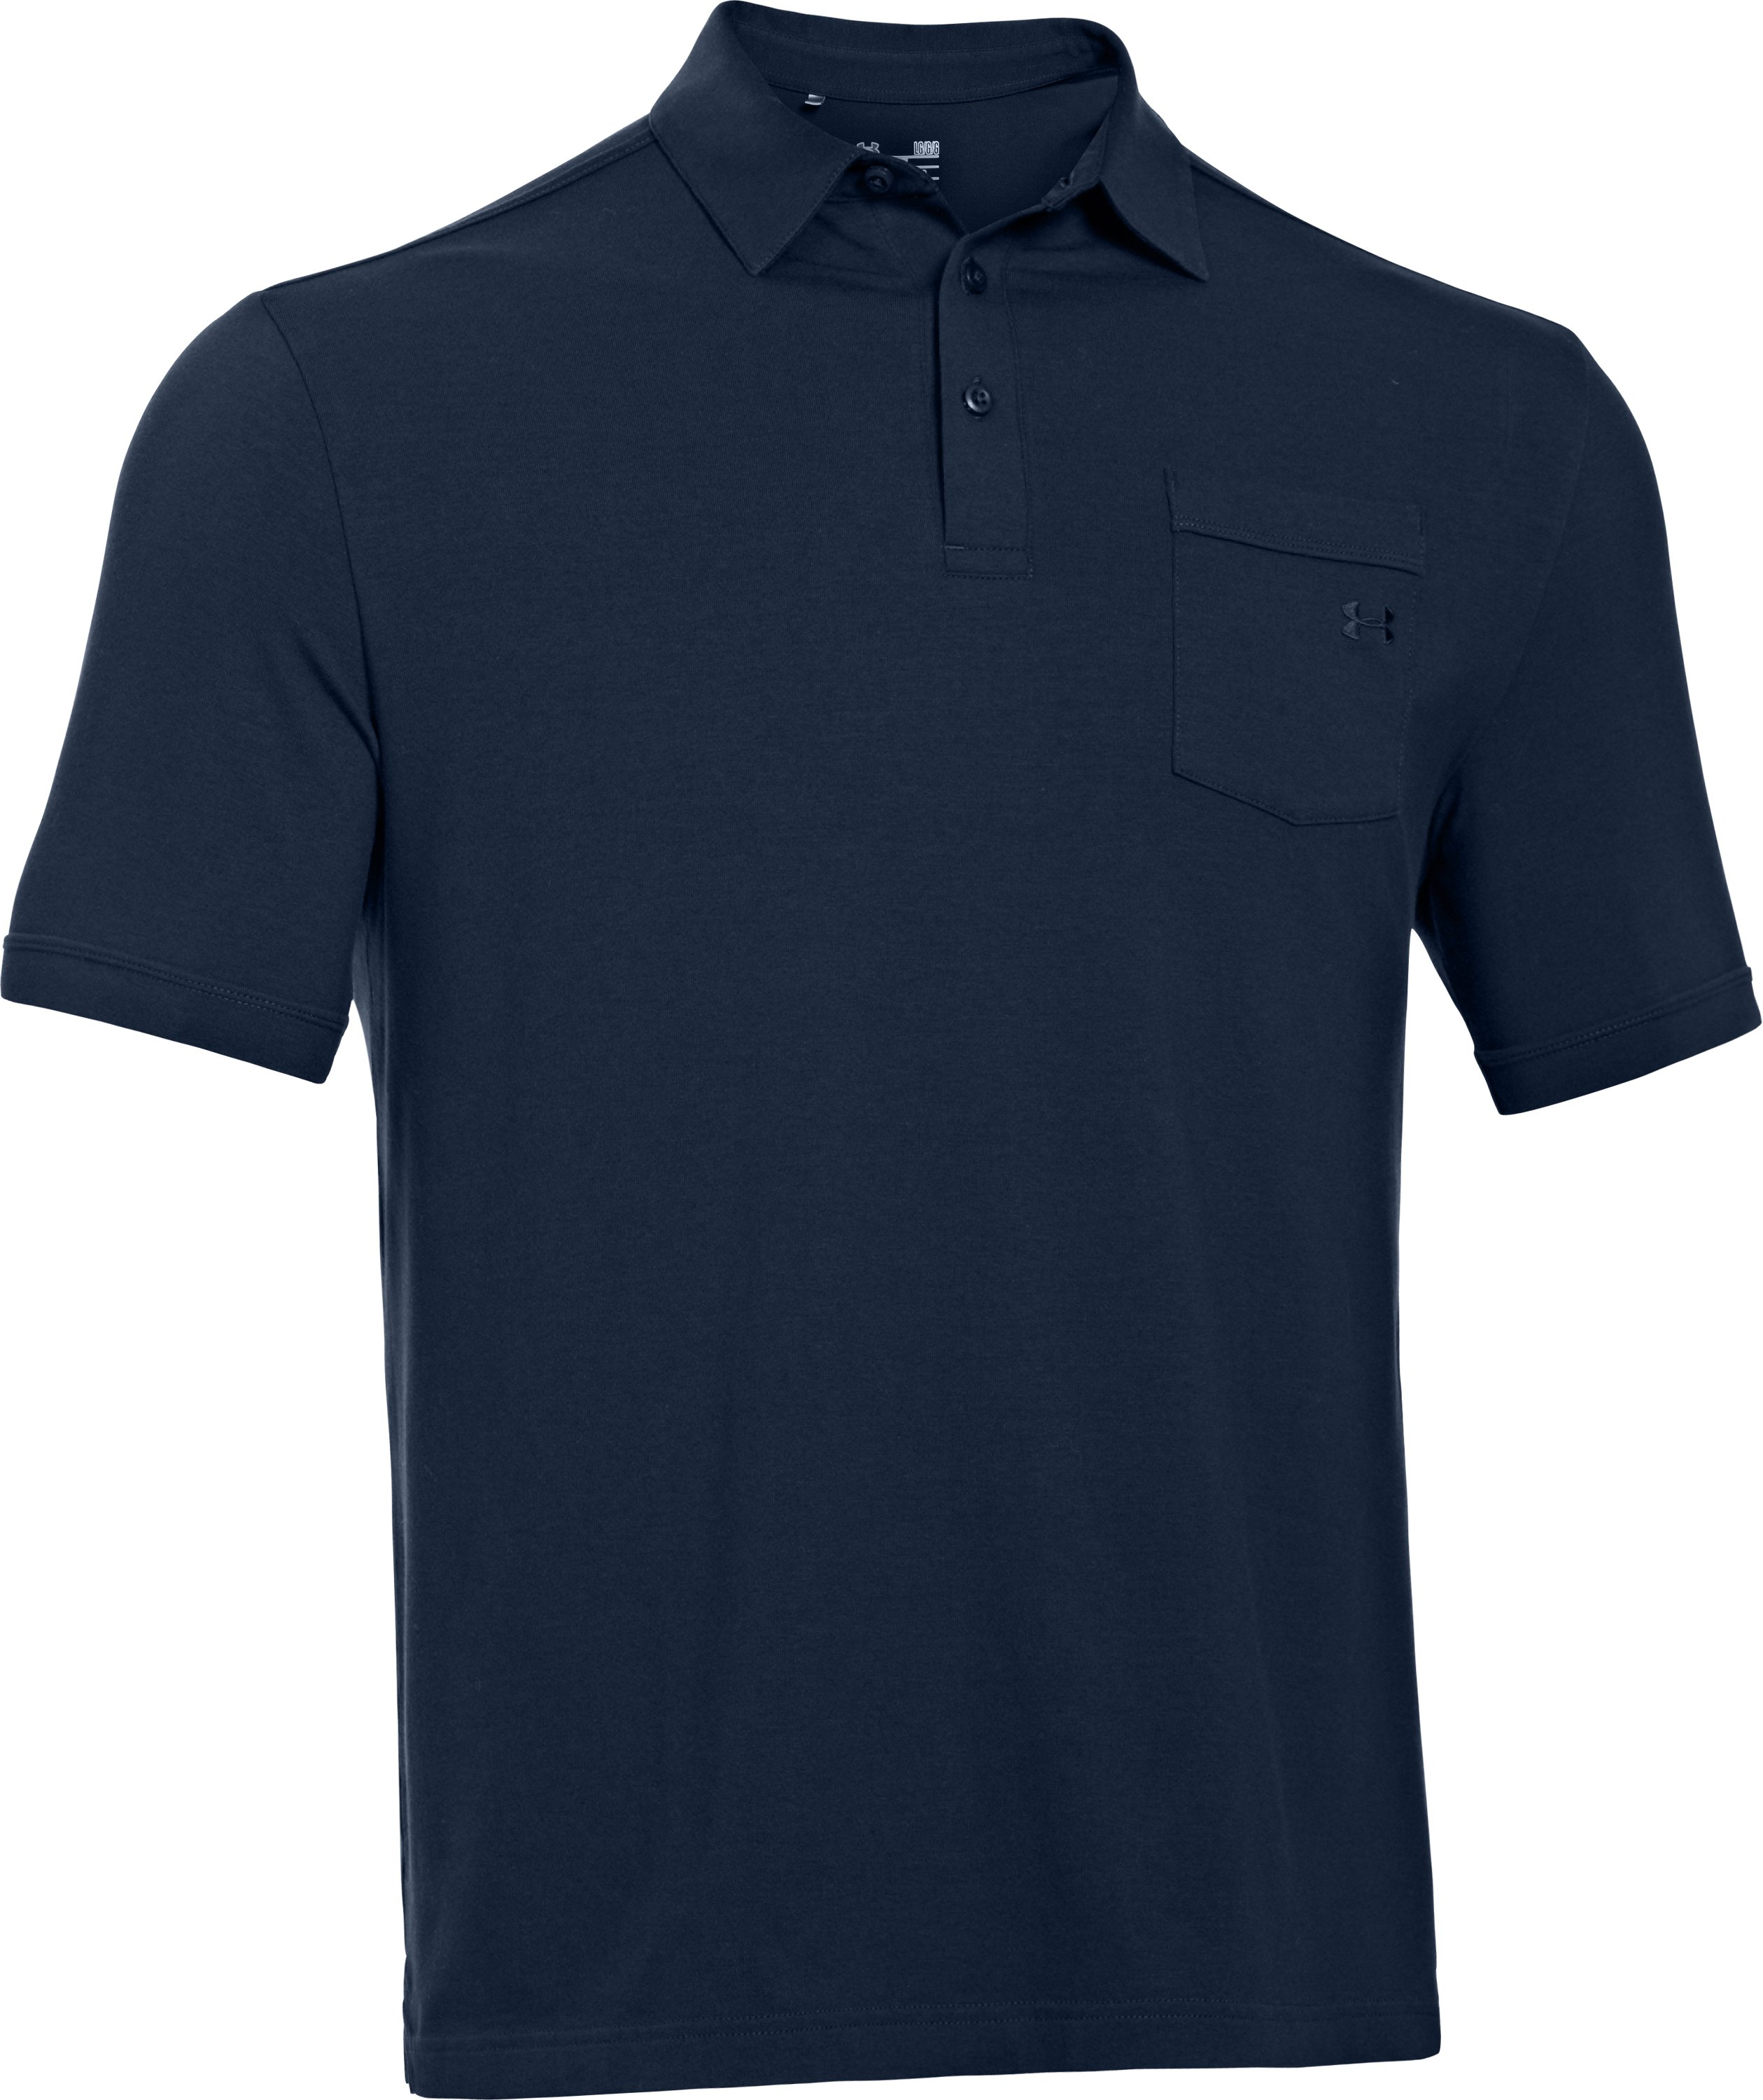 Men's Charged Cotton® Pocket Polo, Academy